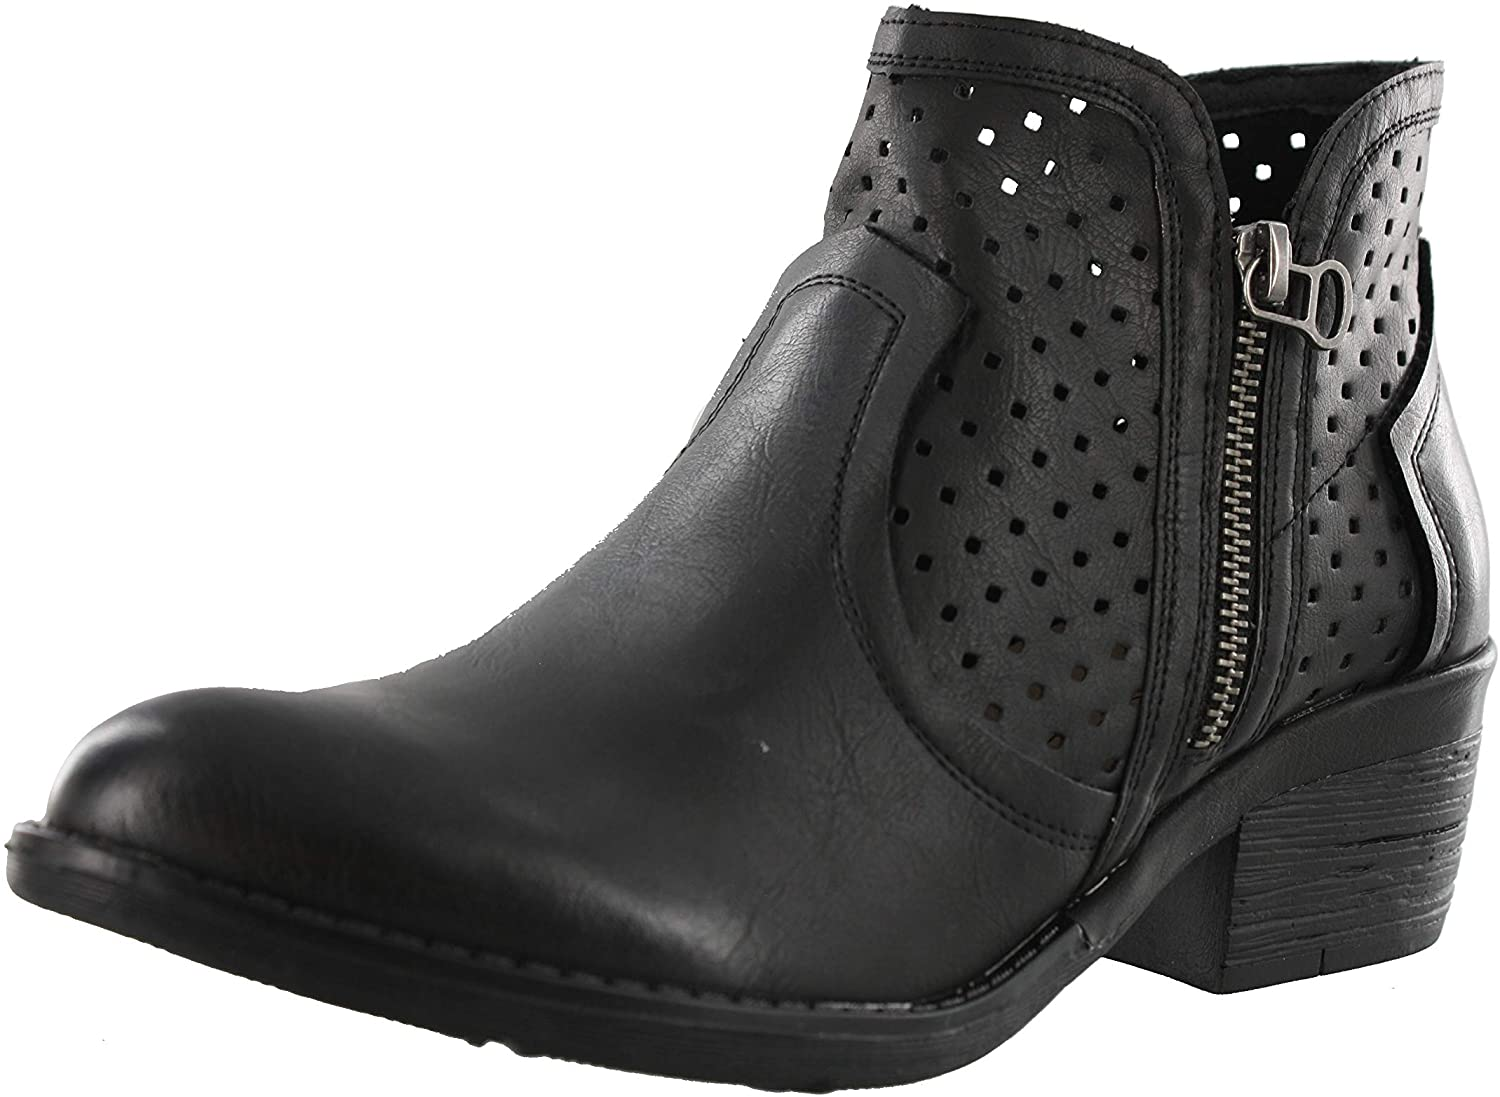 Corkys Women's Bismark Leather Boot